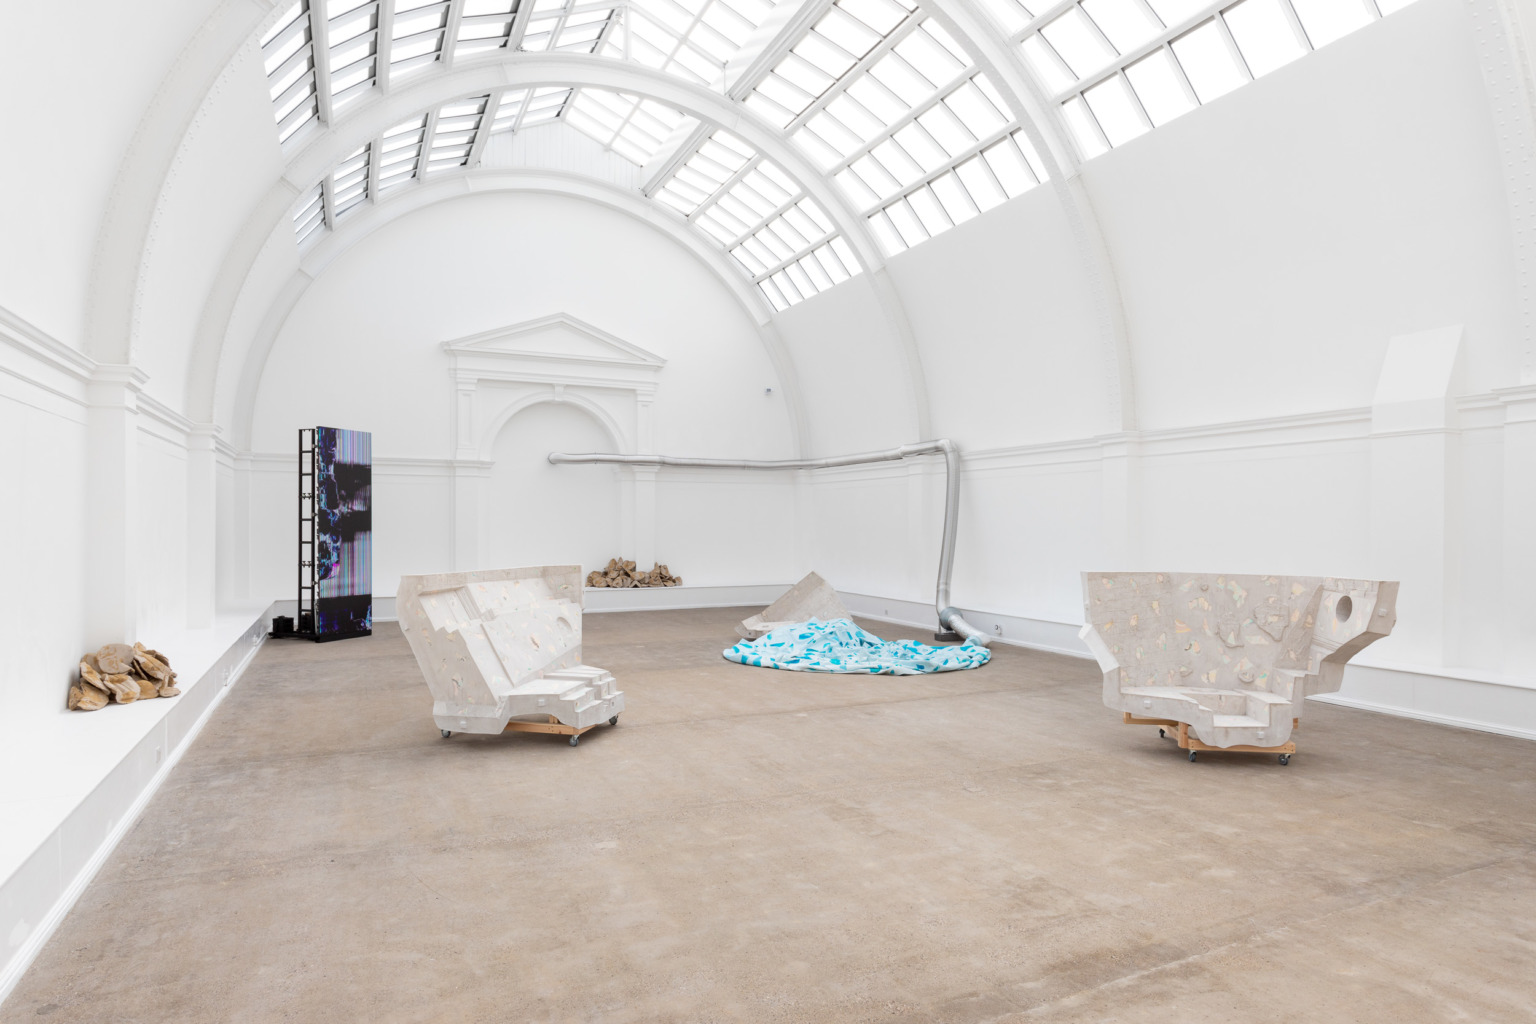 Six sculptures in a white gallery space with a glass arched roof.